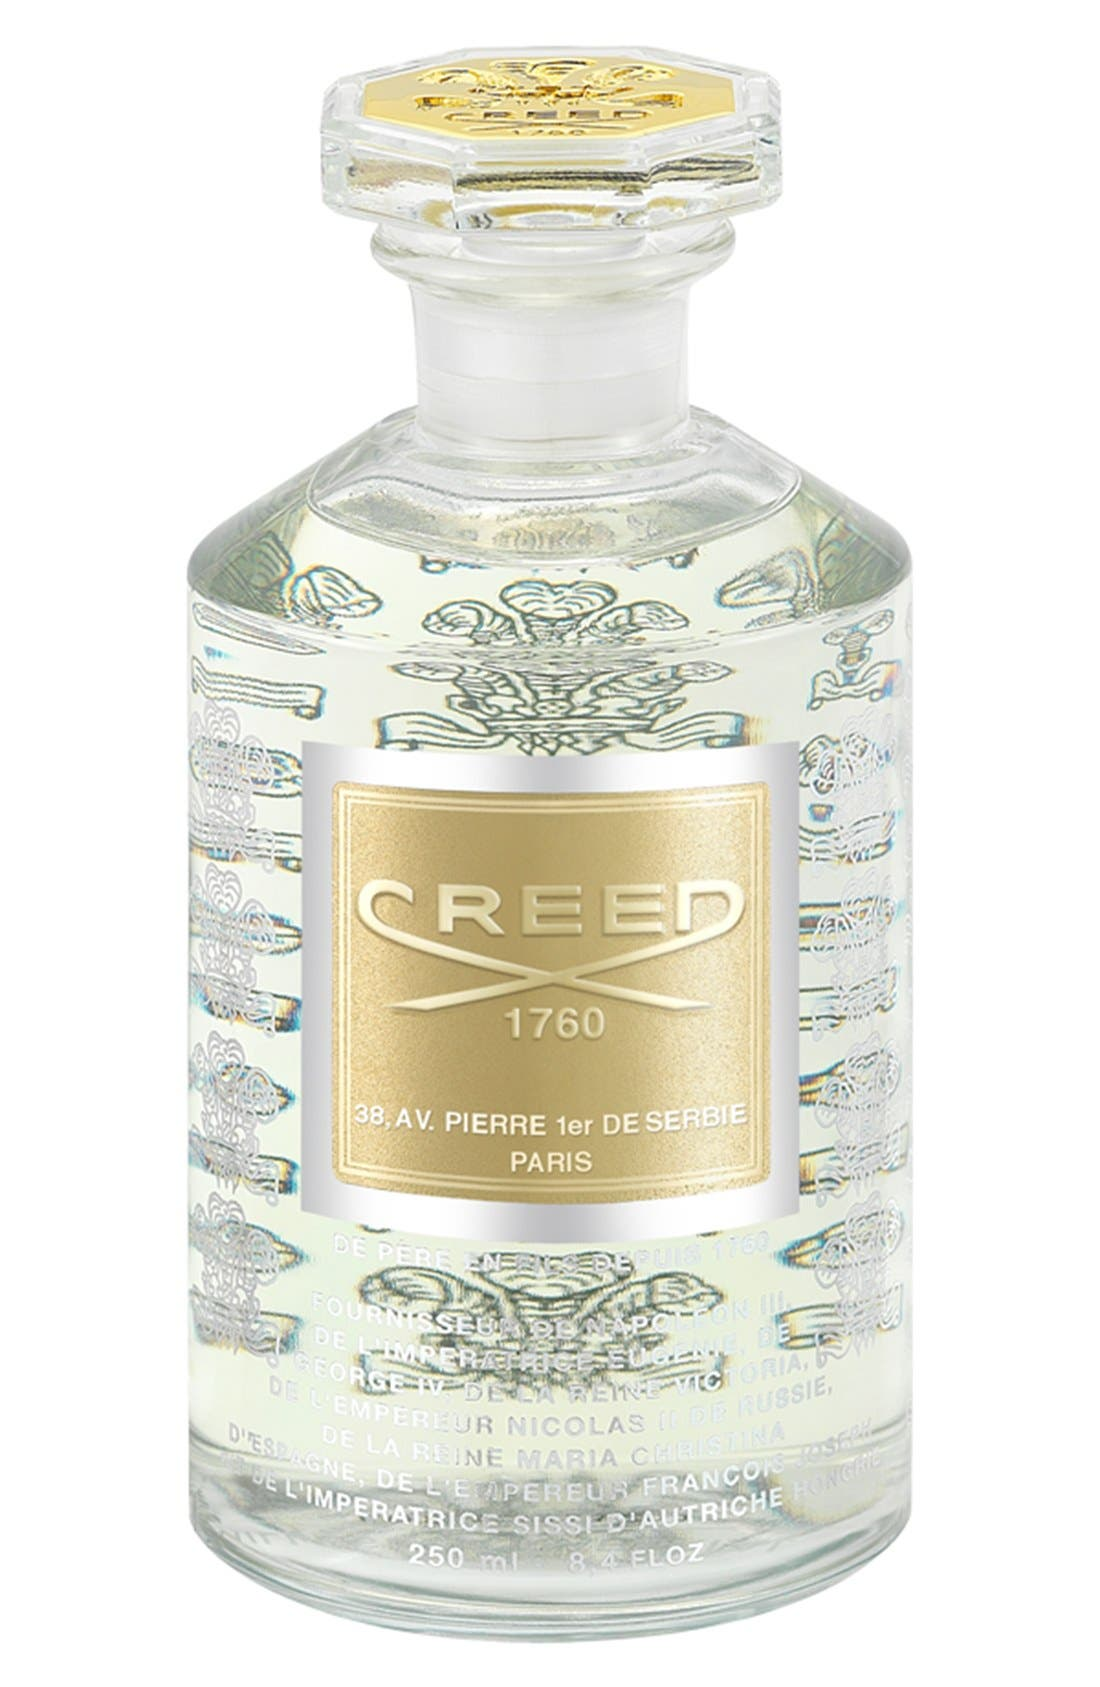 Creed 'Millesime Imperial' Fragrance (8.4 oz.)